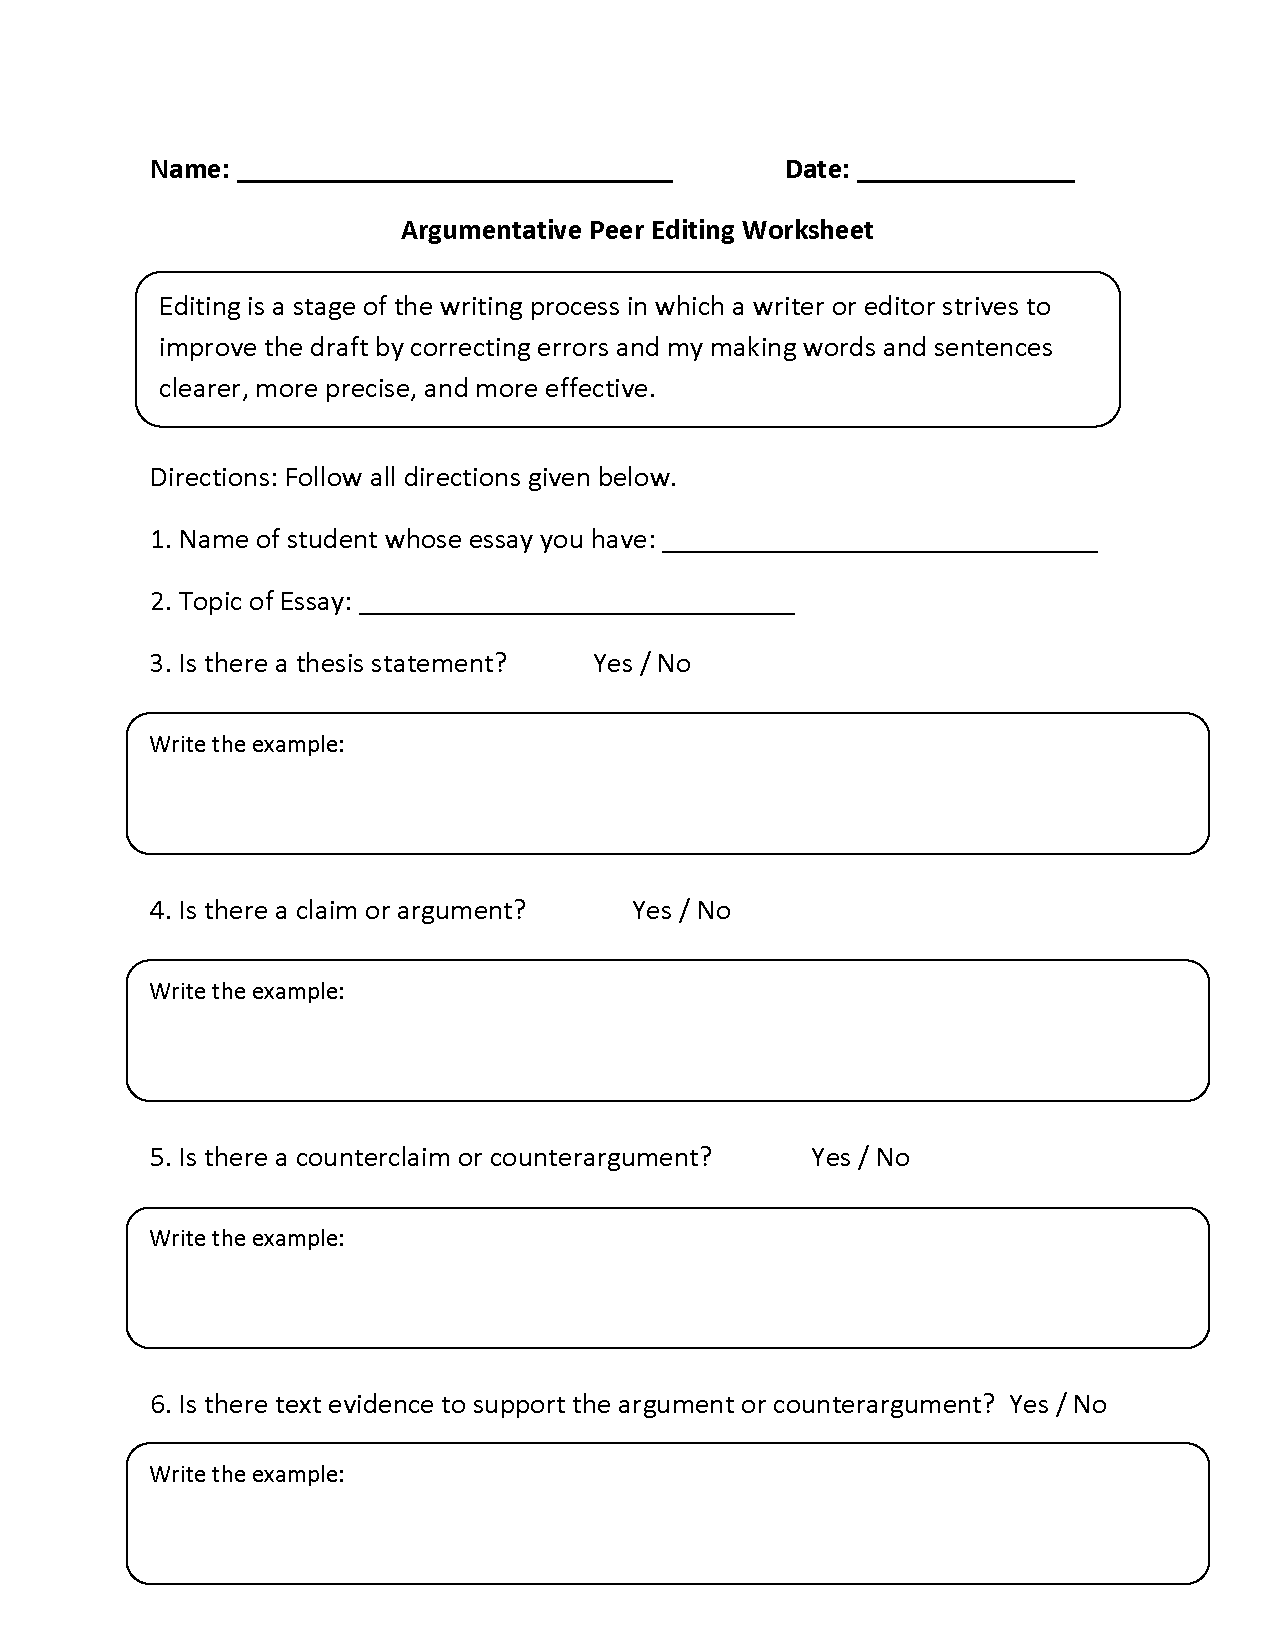 writing an argumentative essay worksheets